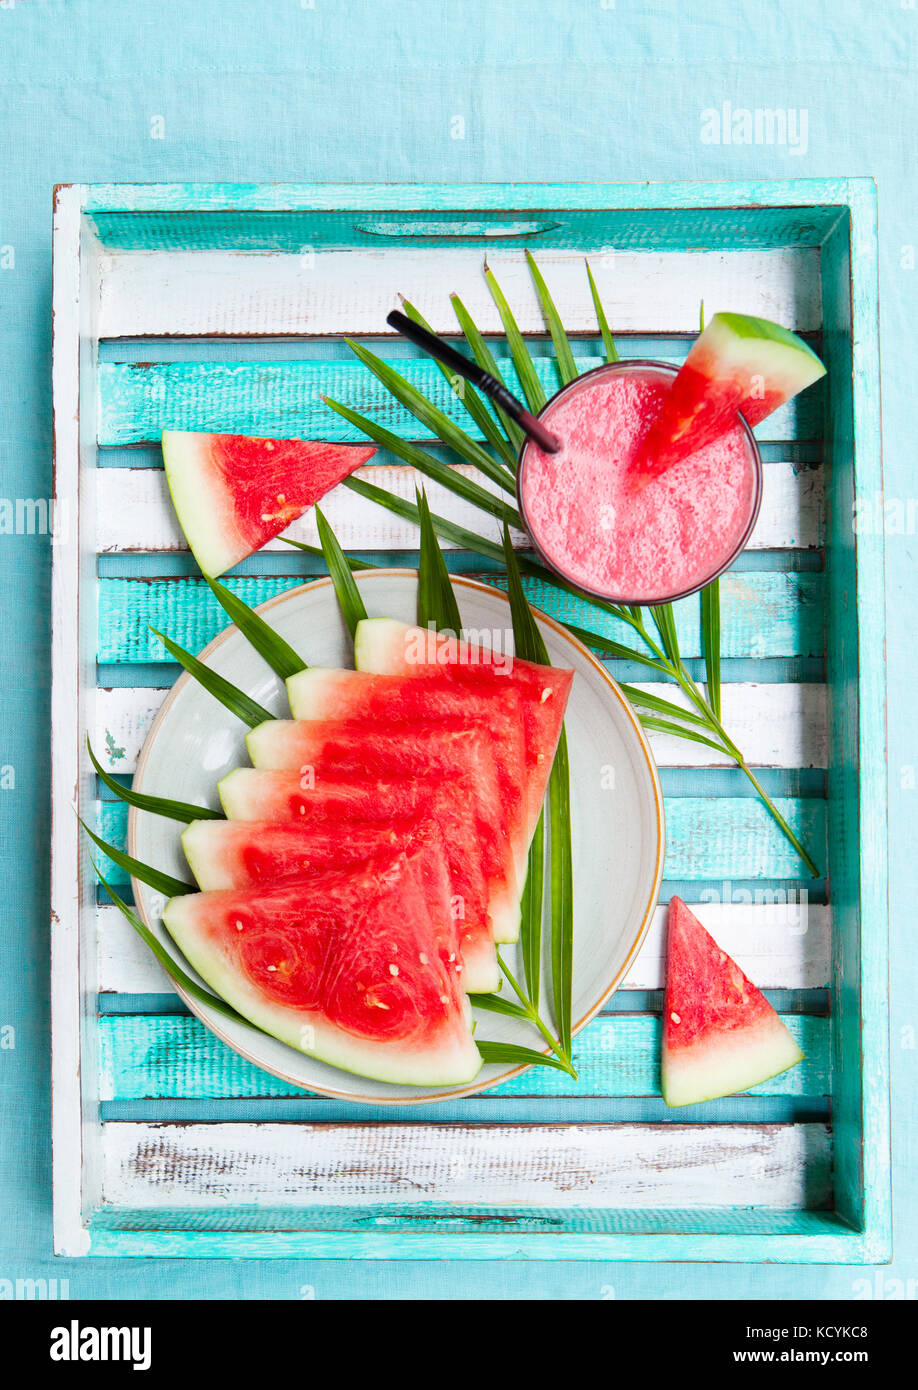 Watermelon smoothie, fresh juice on colorful wooden background with palm leaves. Top view. Copy space. - Stock Image